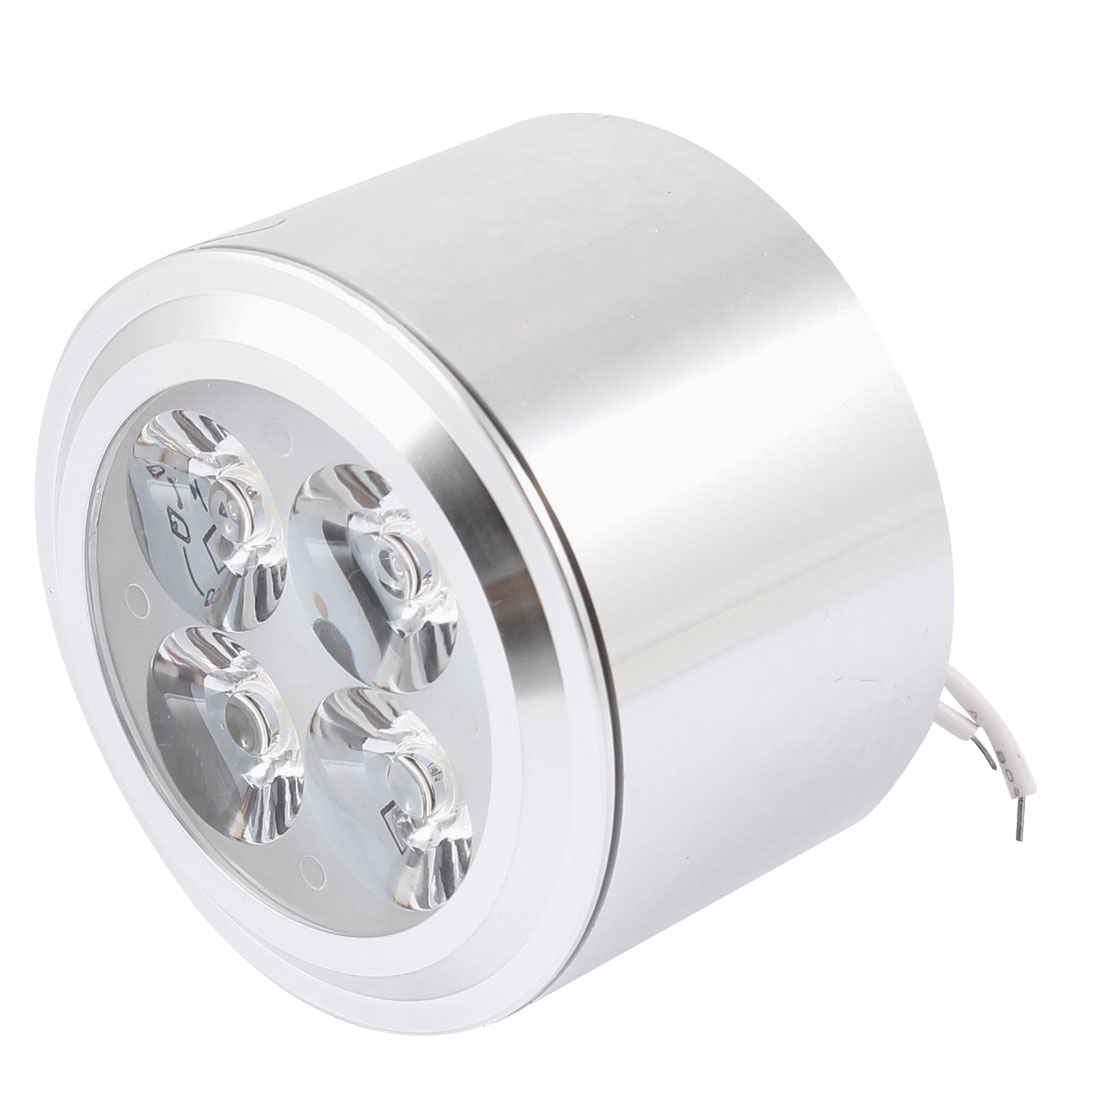 AC100V-260V 4W Watt Pure White Ceiling Downlight Spotlight Lamp Bulb